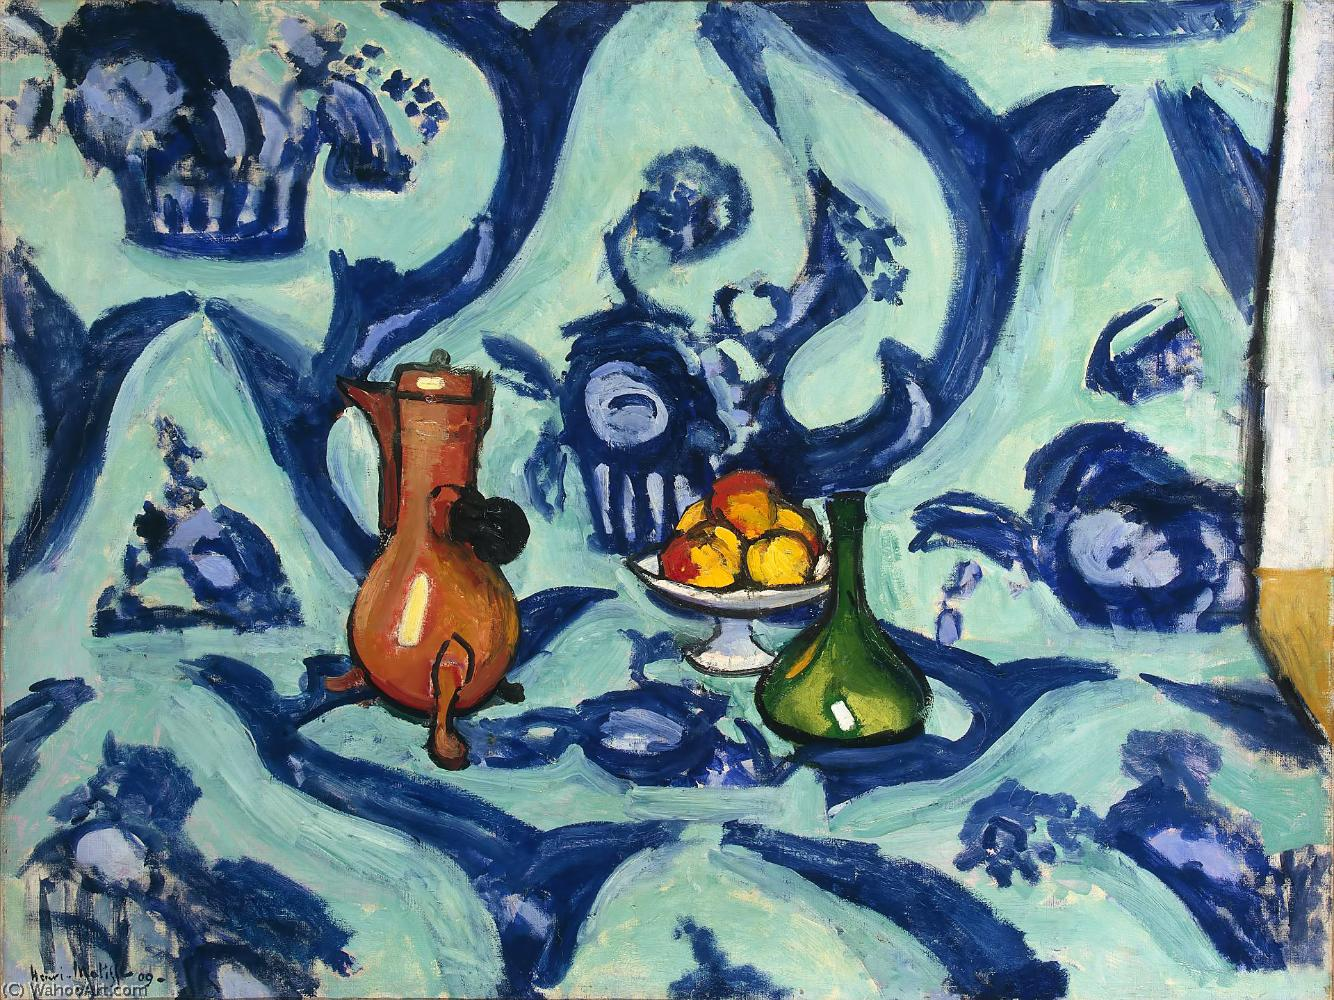 Nature morte camaîeu bleu Huile sur Toile St Petersbourg, museum of the Hermitage by Henri Matisse (1869-1954, France)